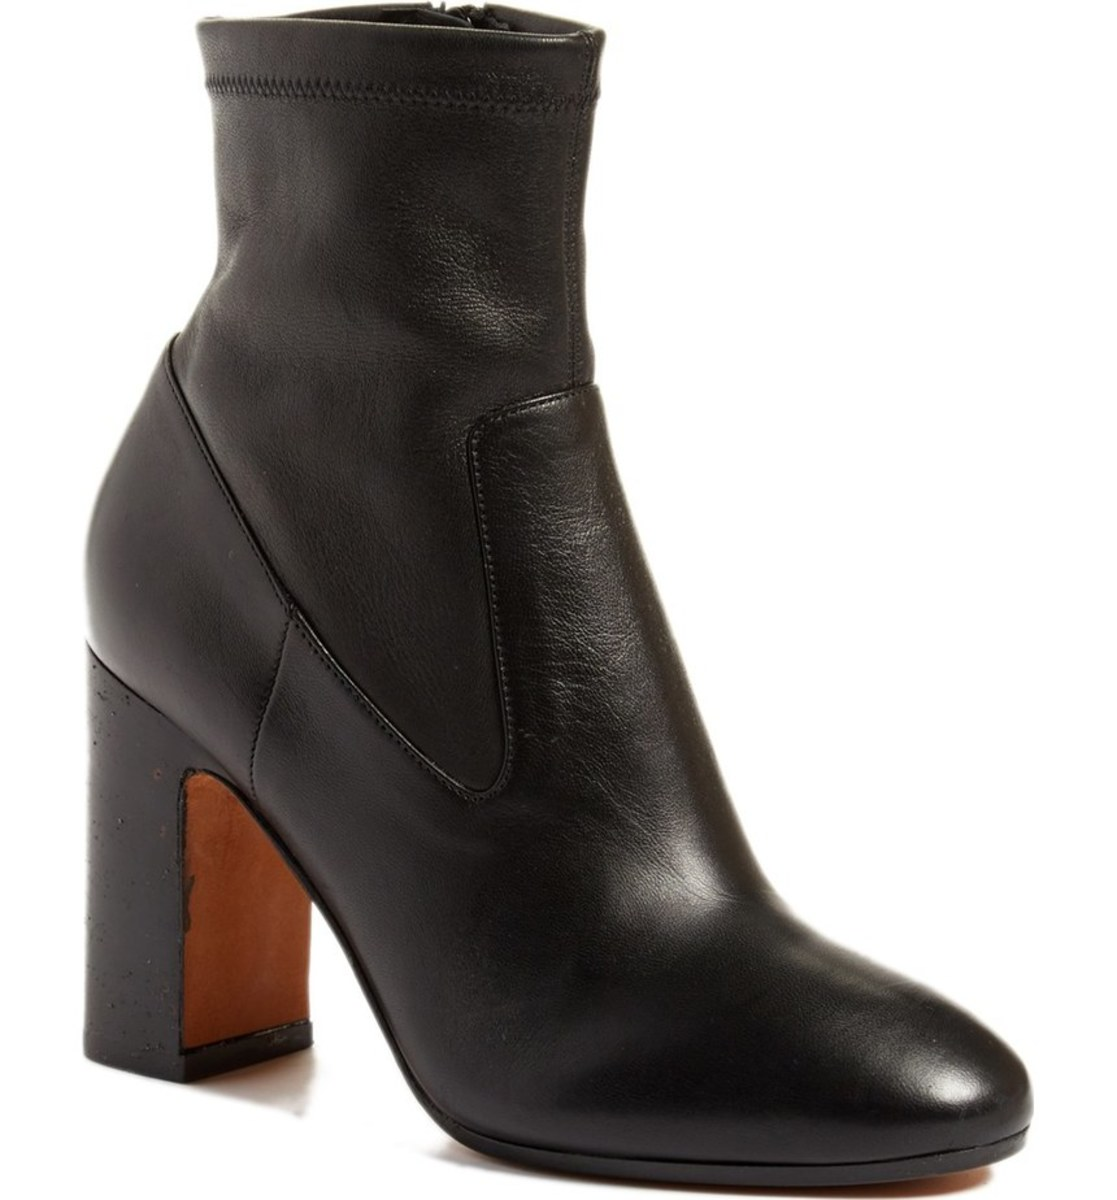 "Vince ""Calista"" Block Heel Bootie, $224.98 (from $450), available at Nordstrom."